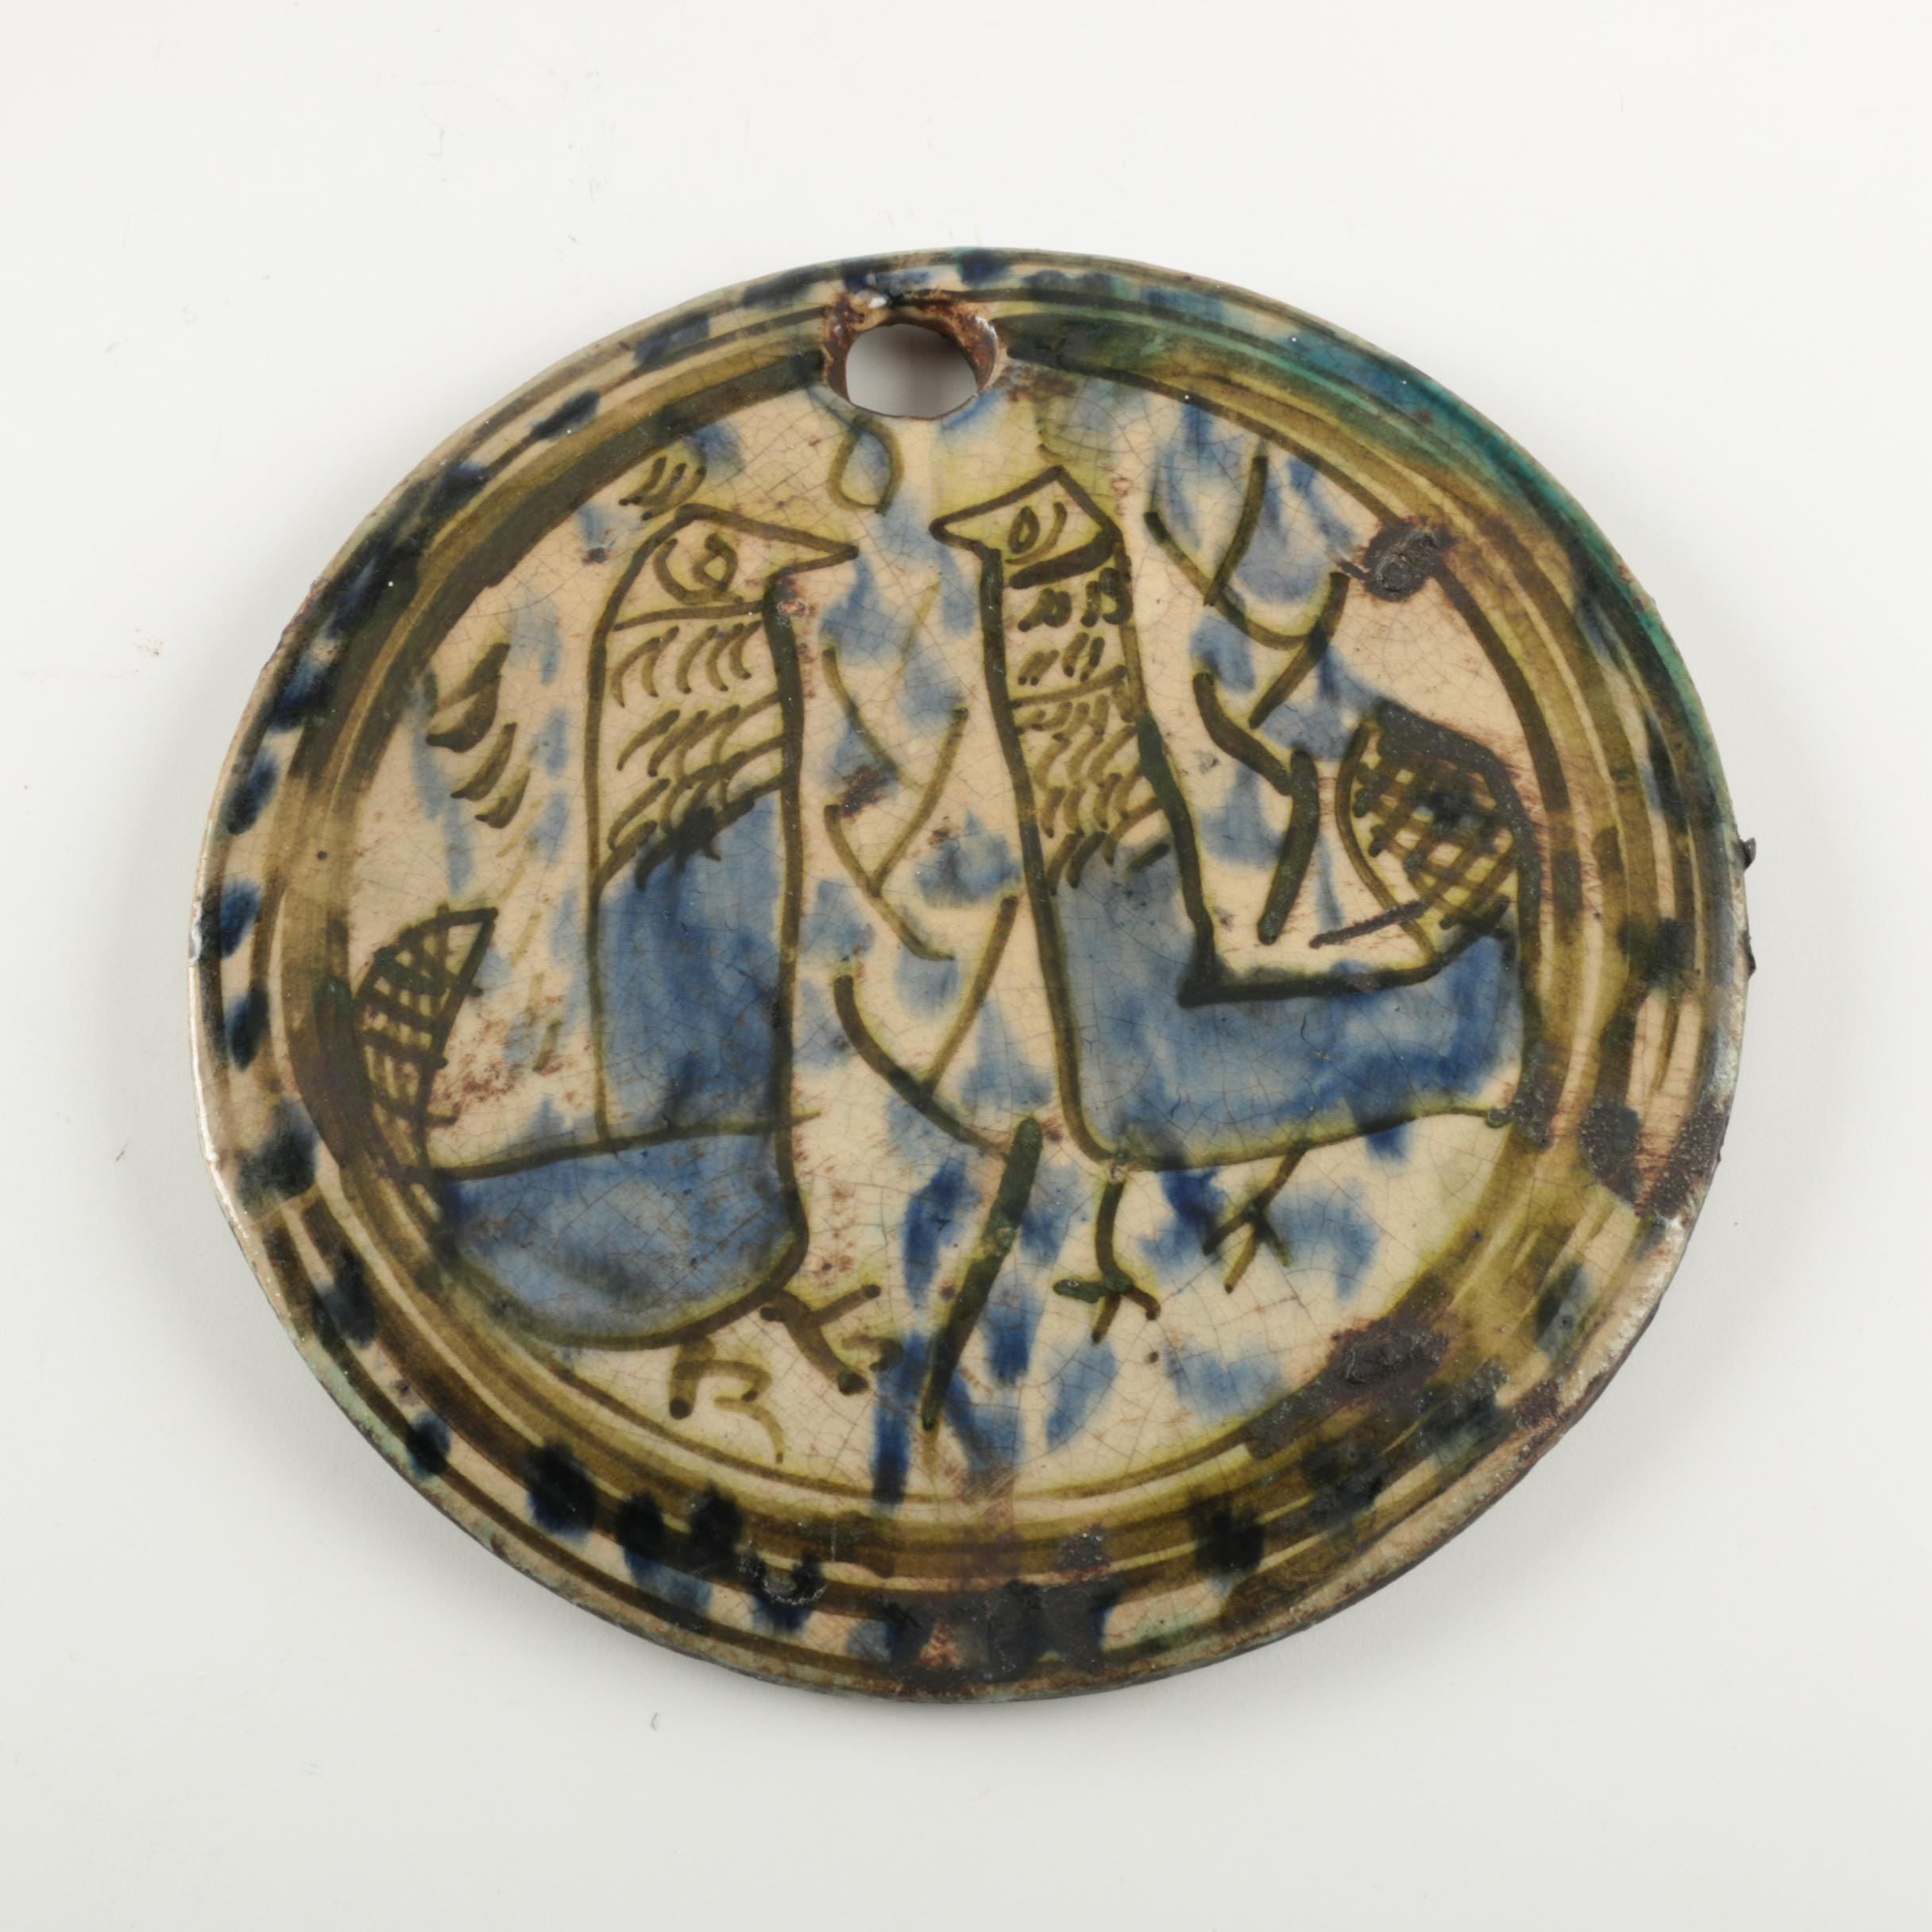 Hand-Painted 18th to 19th Century Persian Ceramic Plate